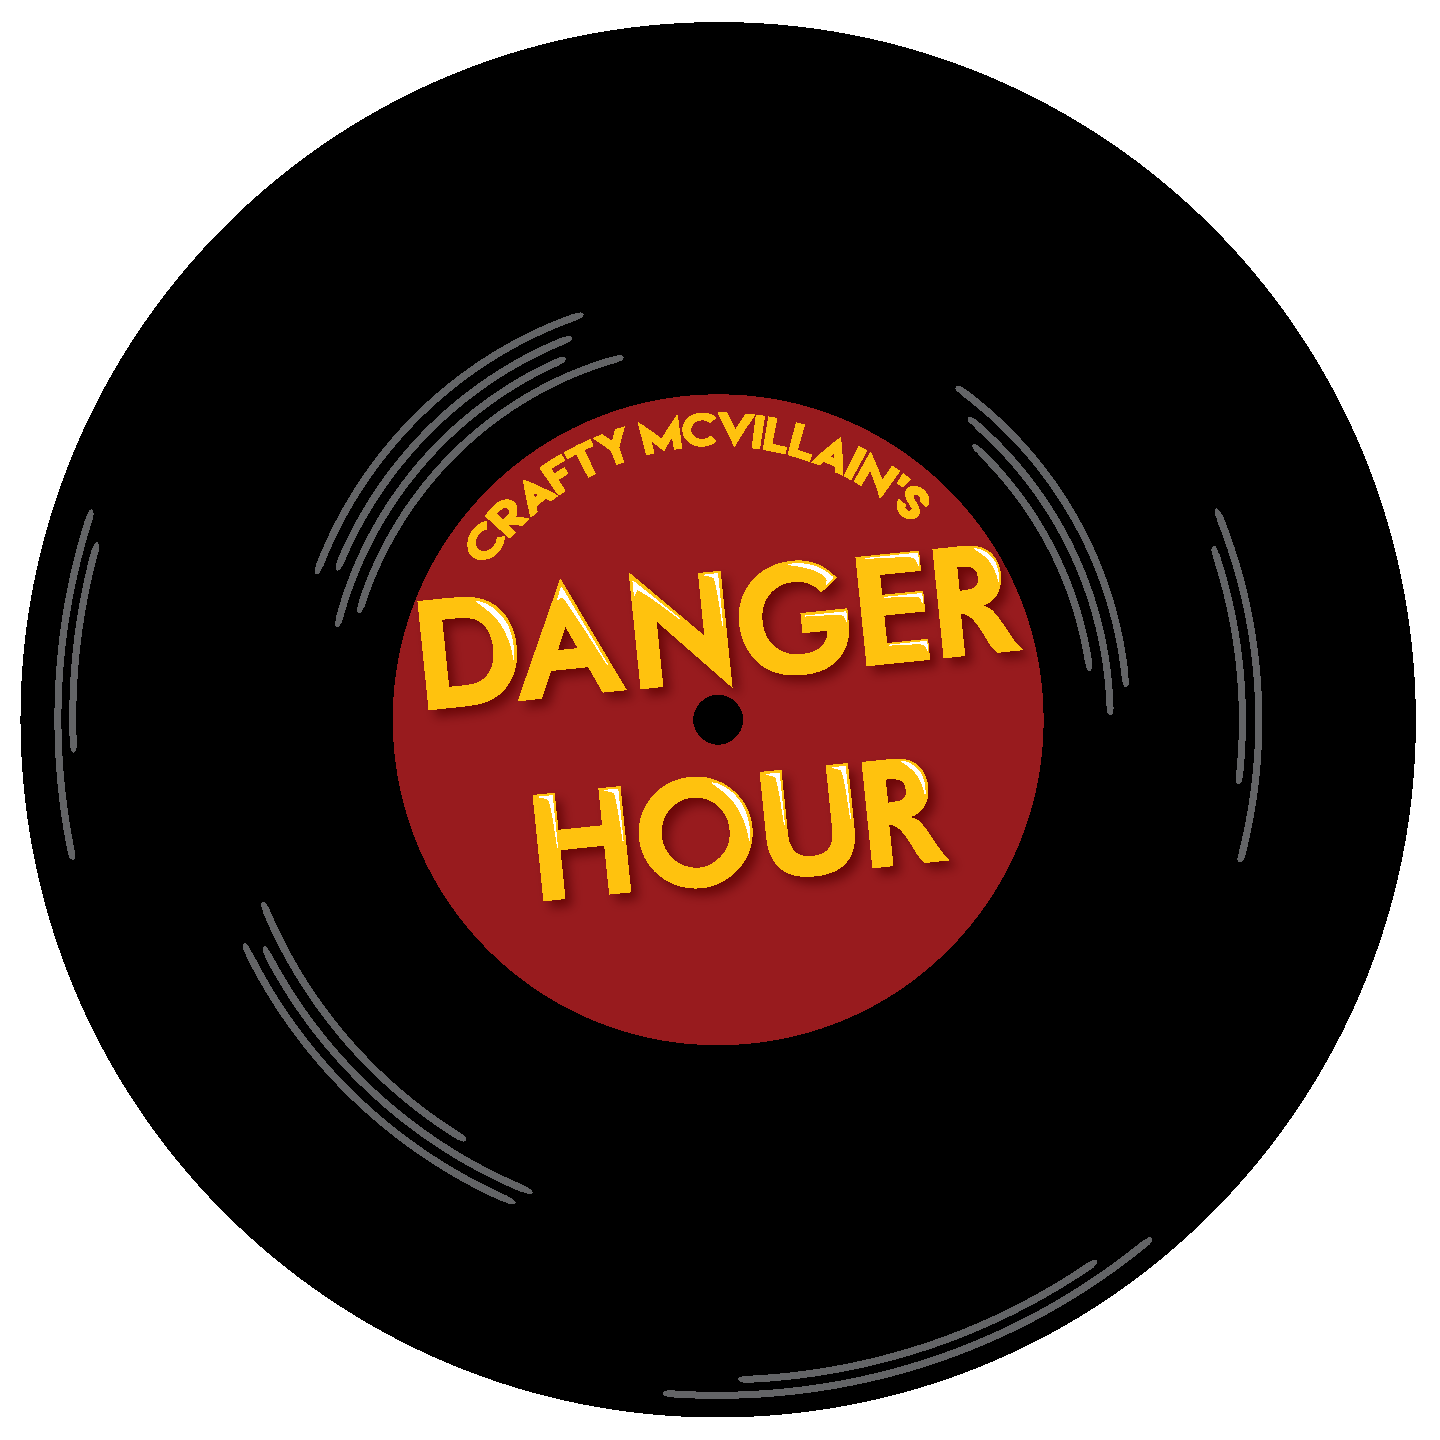 Danger-Hour